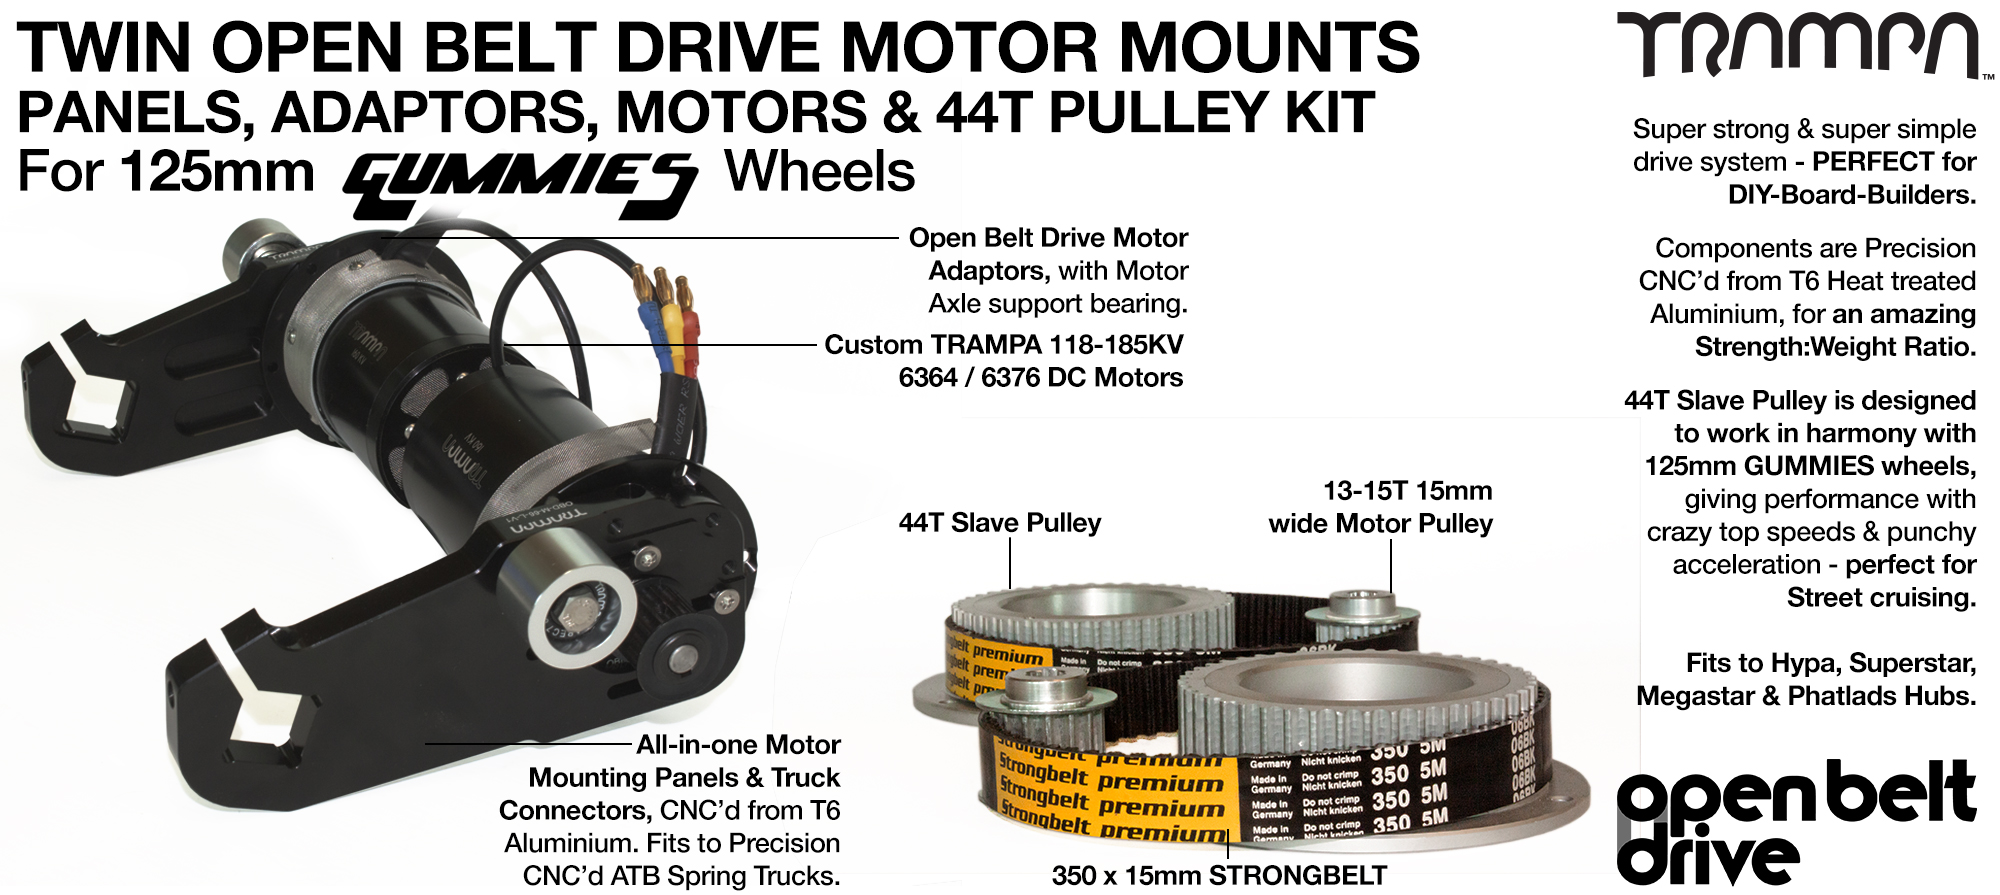 66T OBD Motor Mount with 44T Pulley kit & custom Motor - TWIN